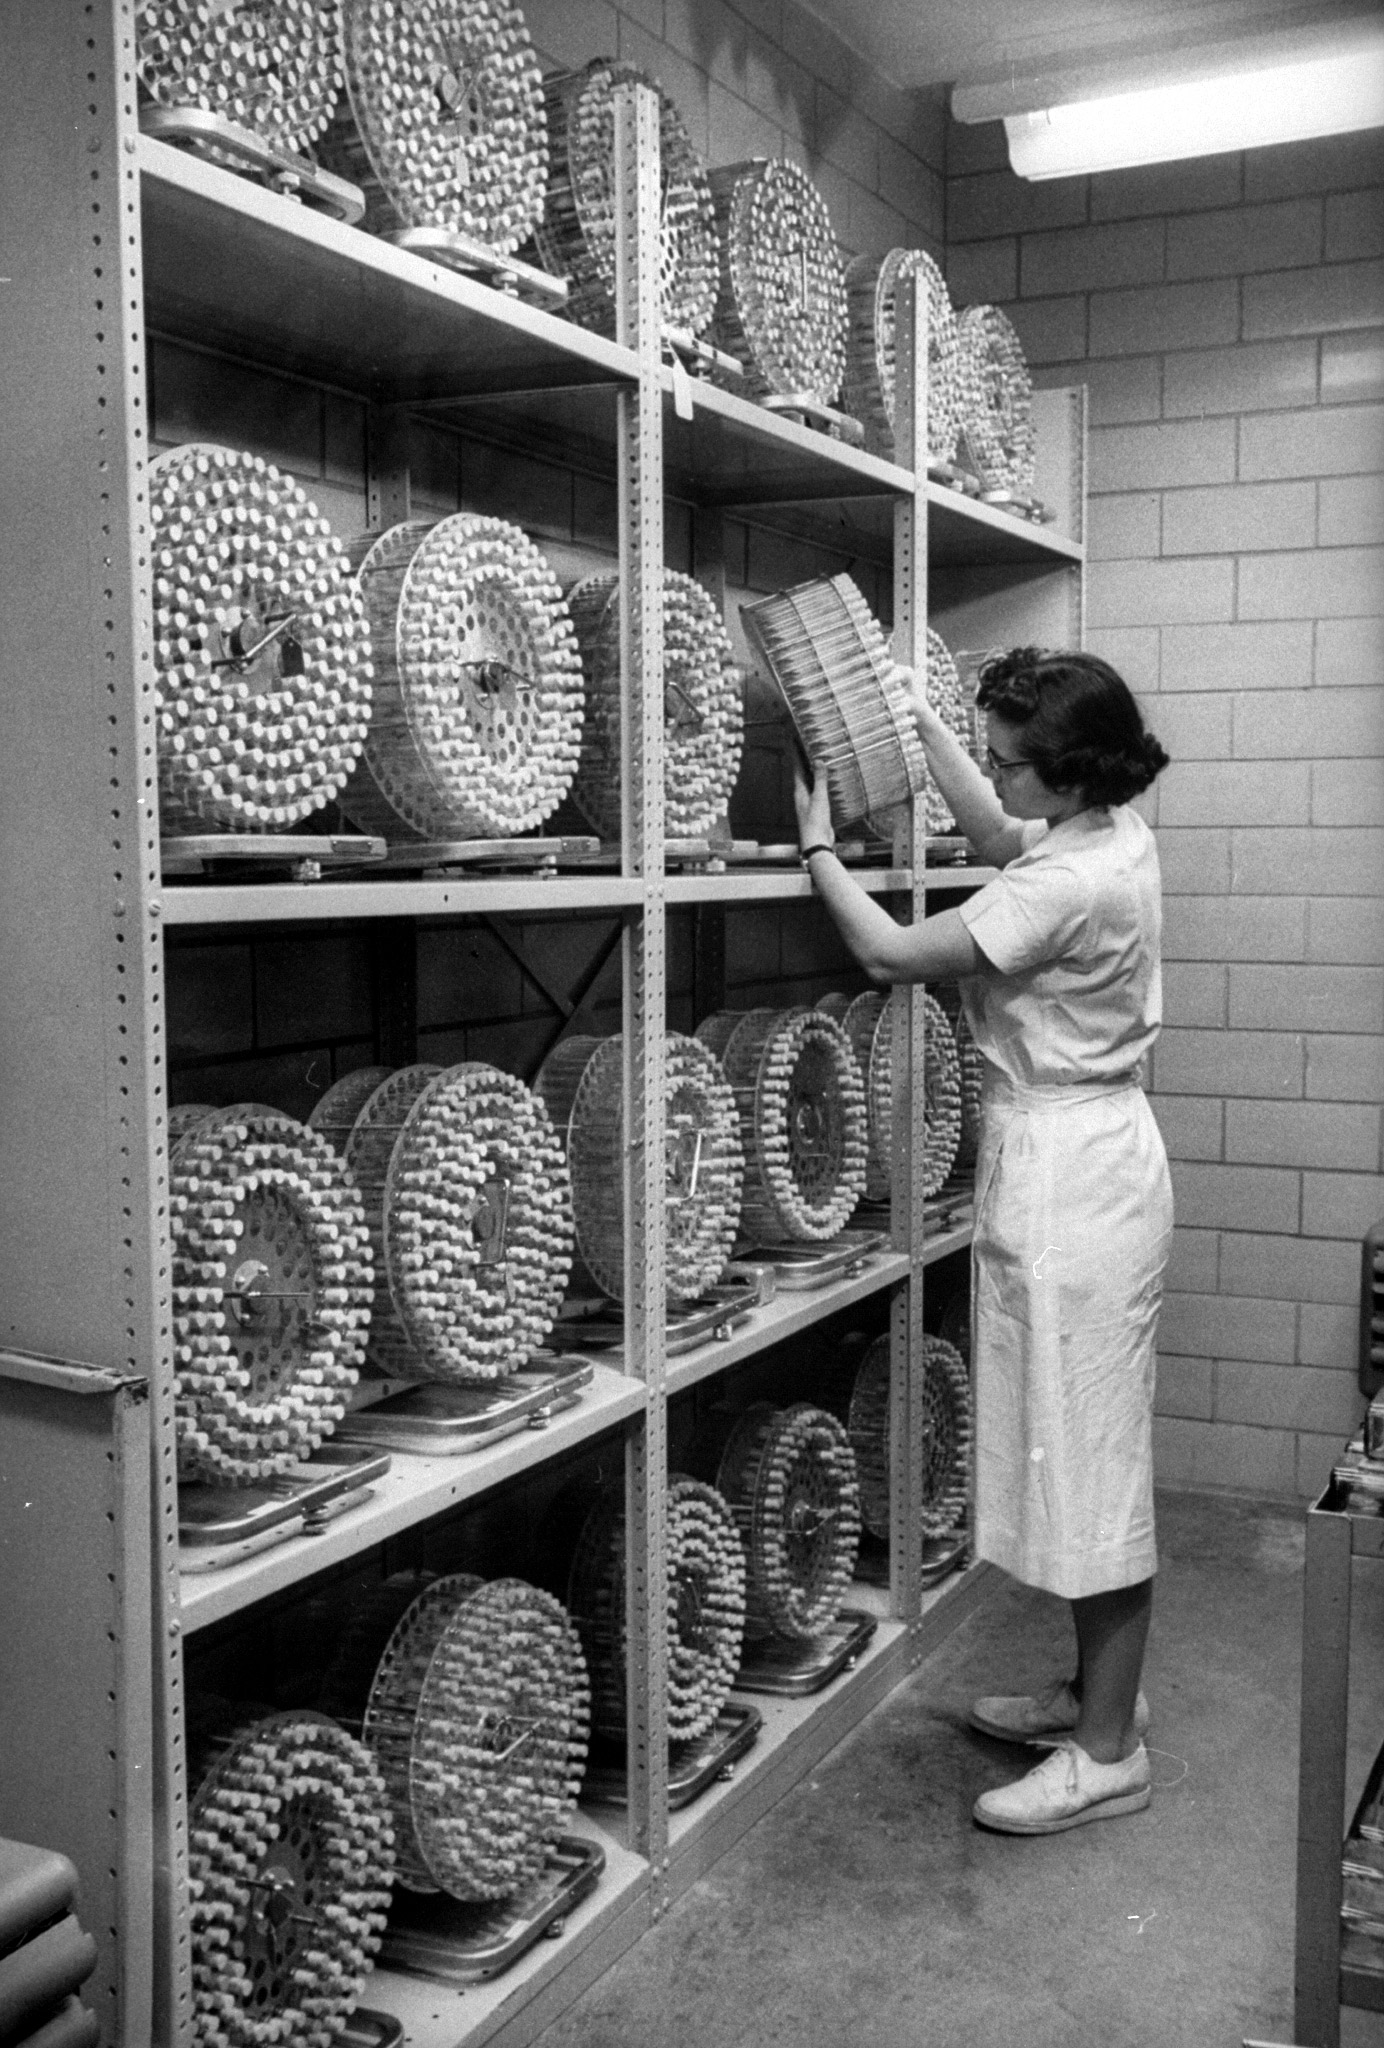 <b>Caption from LIFE.</b> In incubator room, test tubes of vaccine samples rotate slowly in drums for seven days under controlled temperature. The samples are then analyzed.